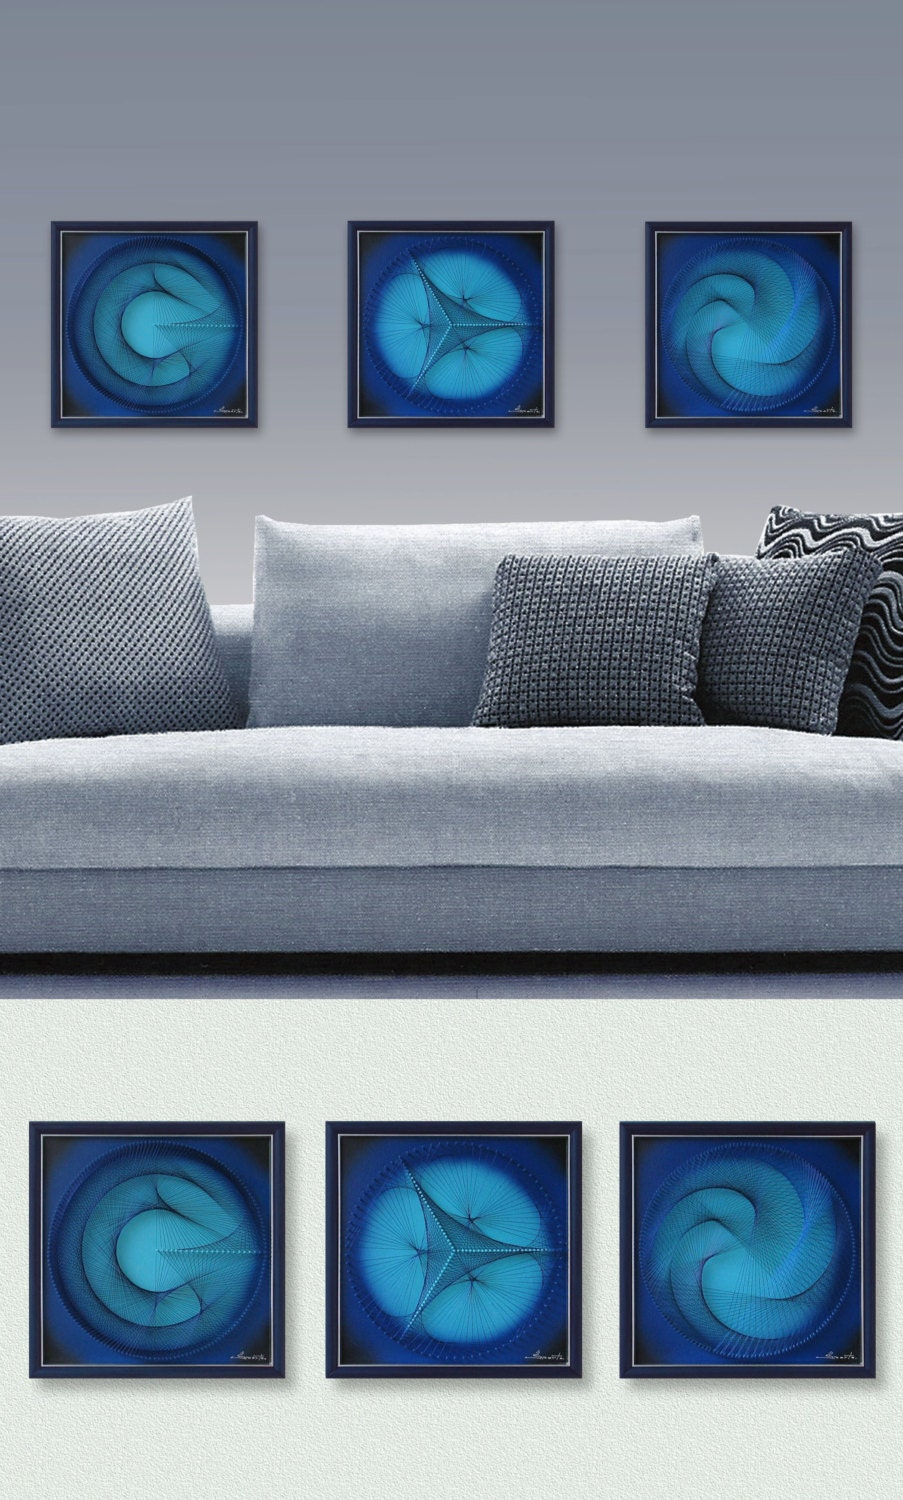 Wall decor for home or office 3d zen abstract string art for Home decor zen